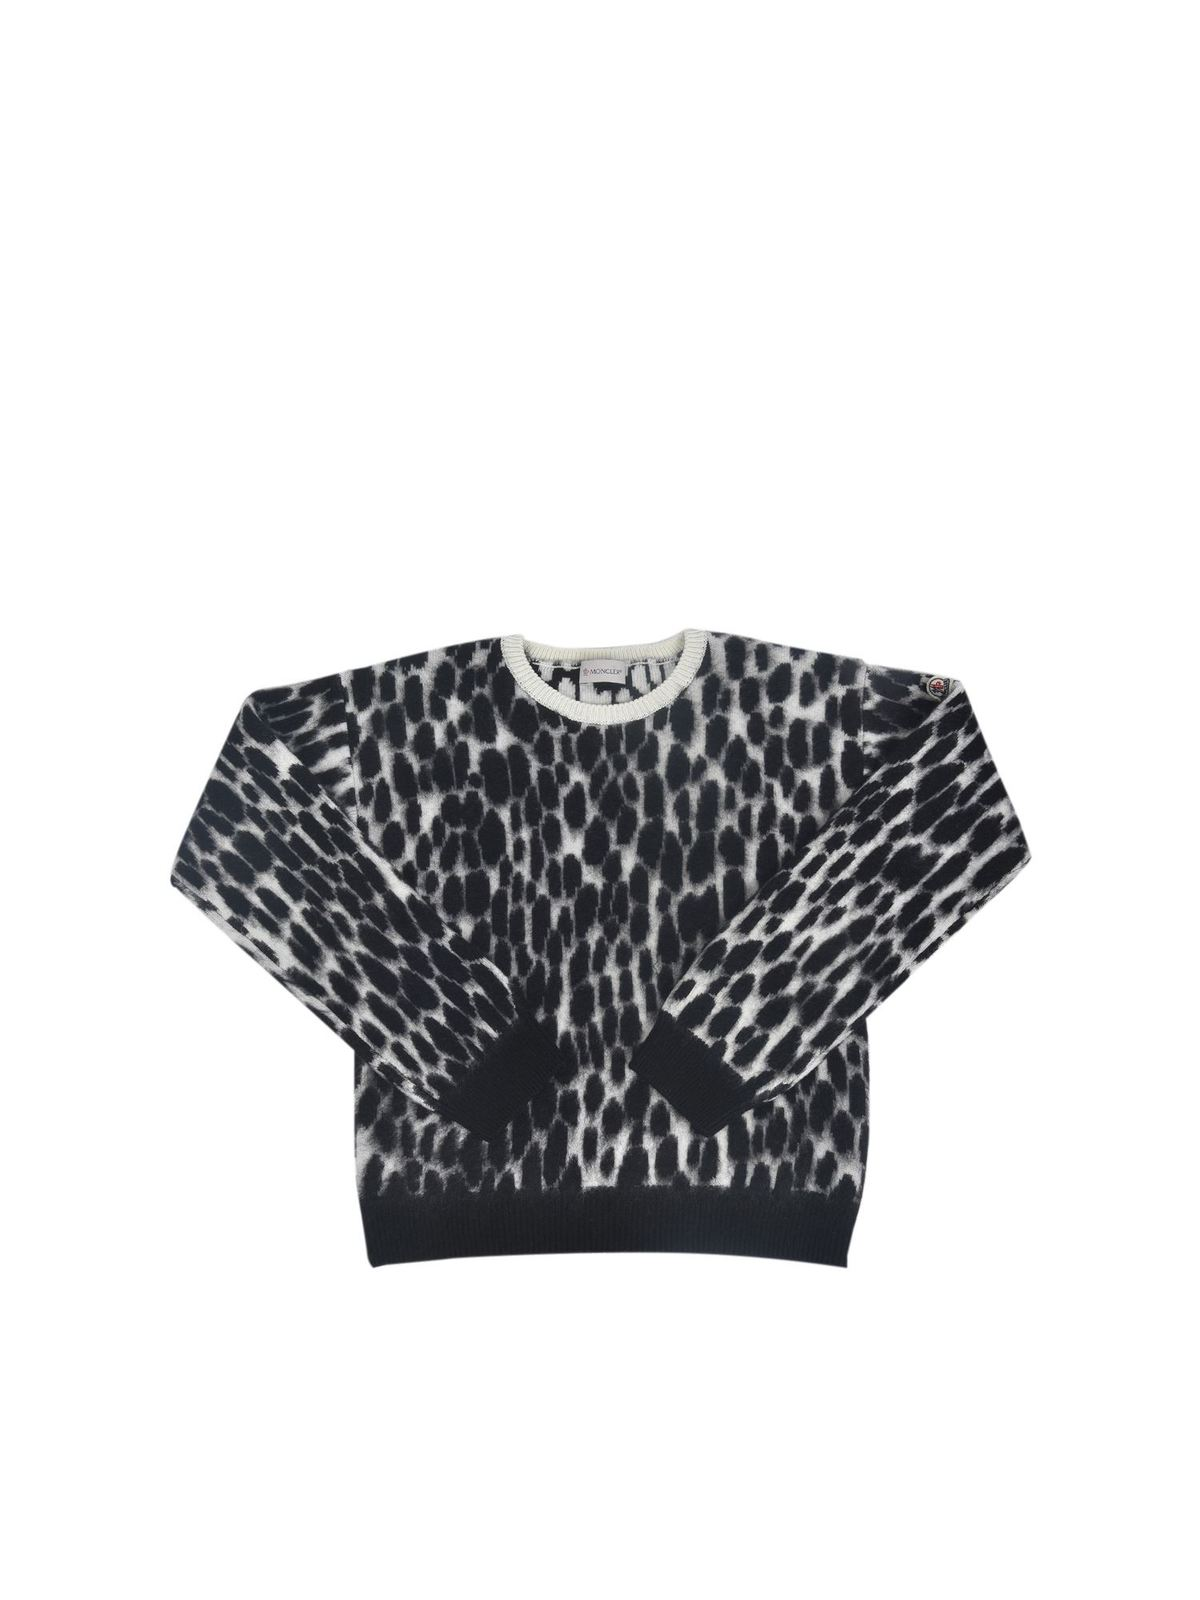 Moncler Jr Clothing ANIMALIER PULLOVER IN BLACK AND WHITE